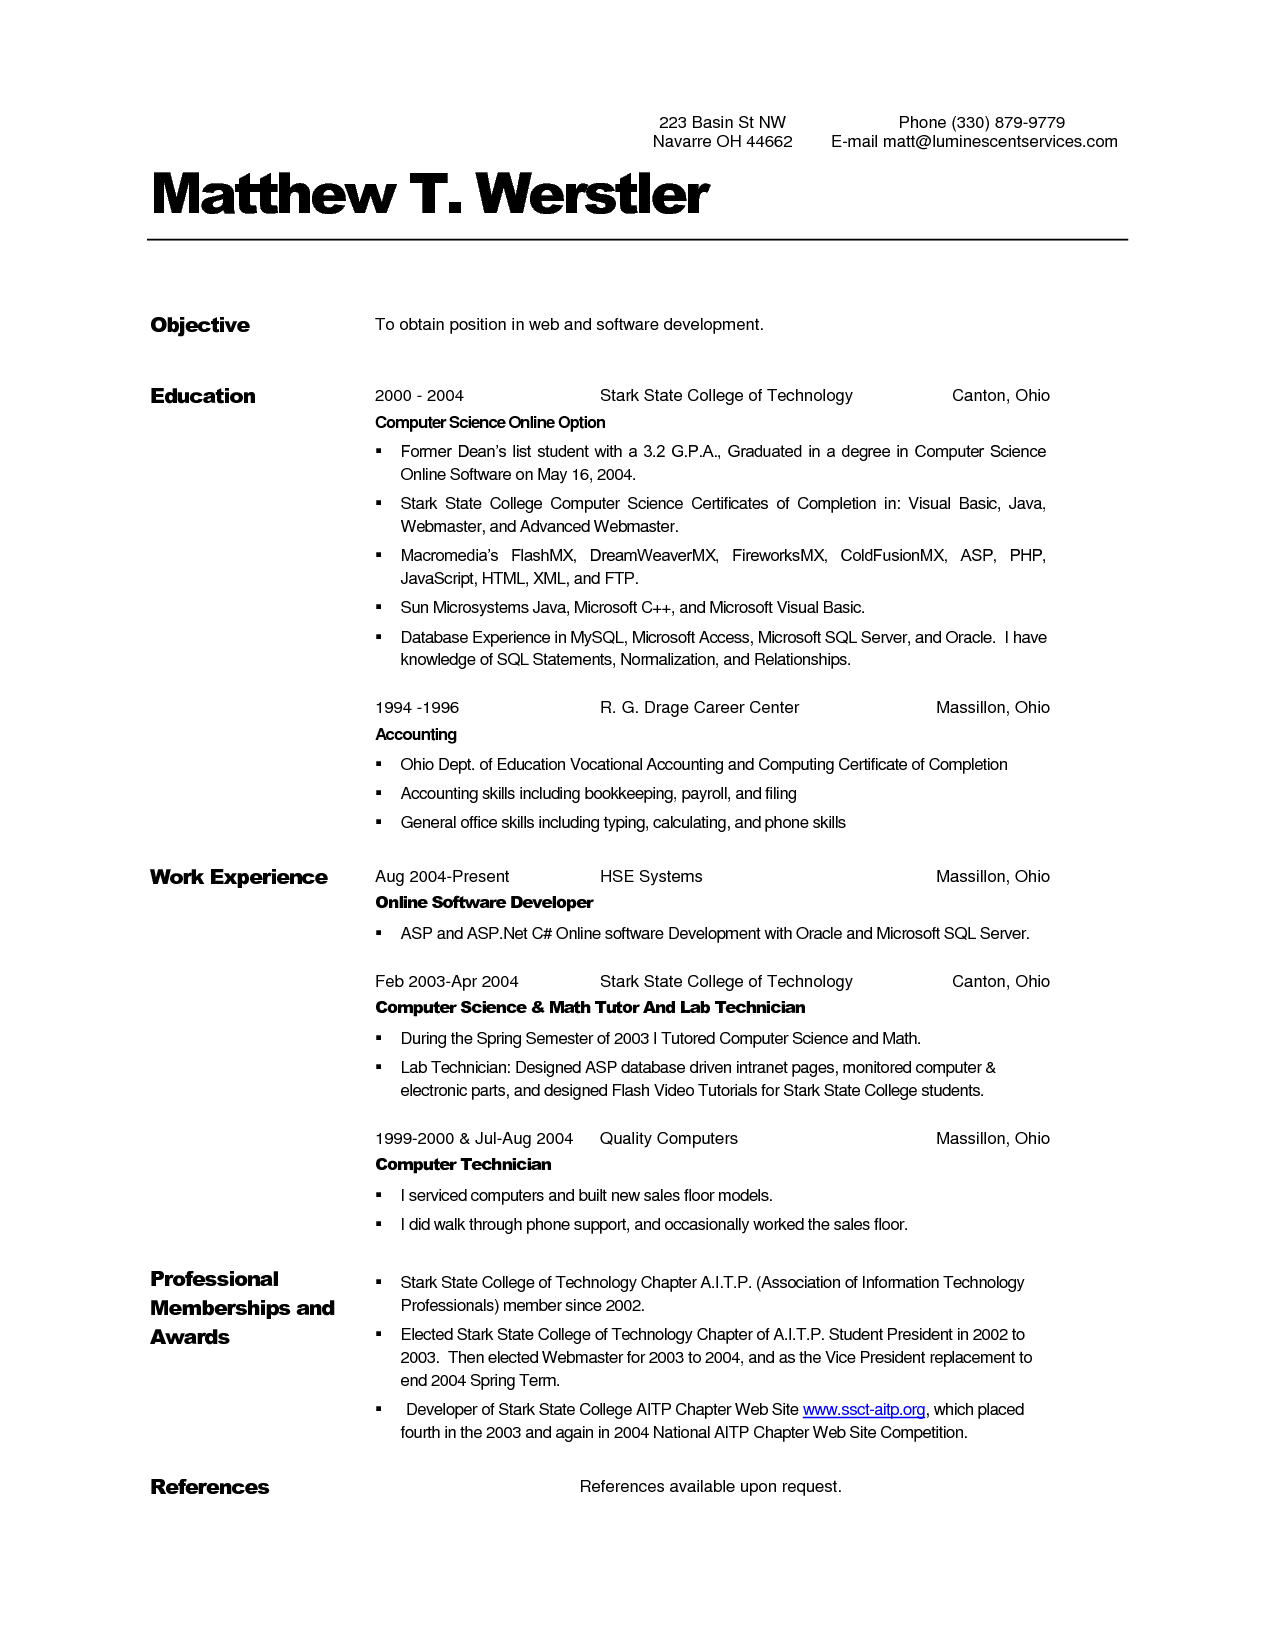 actuarial science resume template sample. free resume samples resume ...